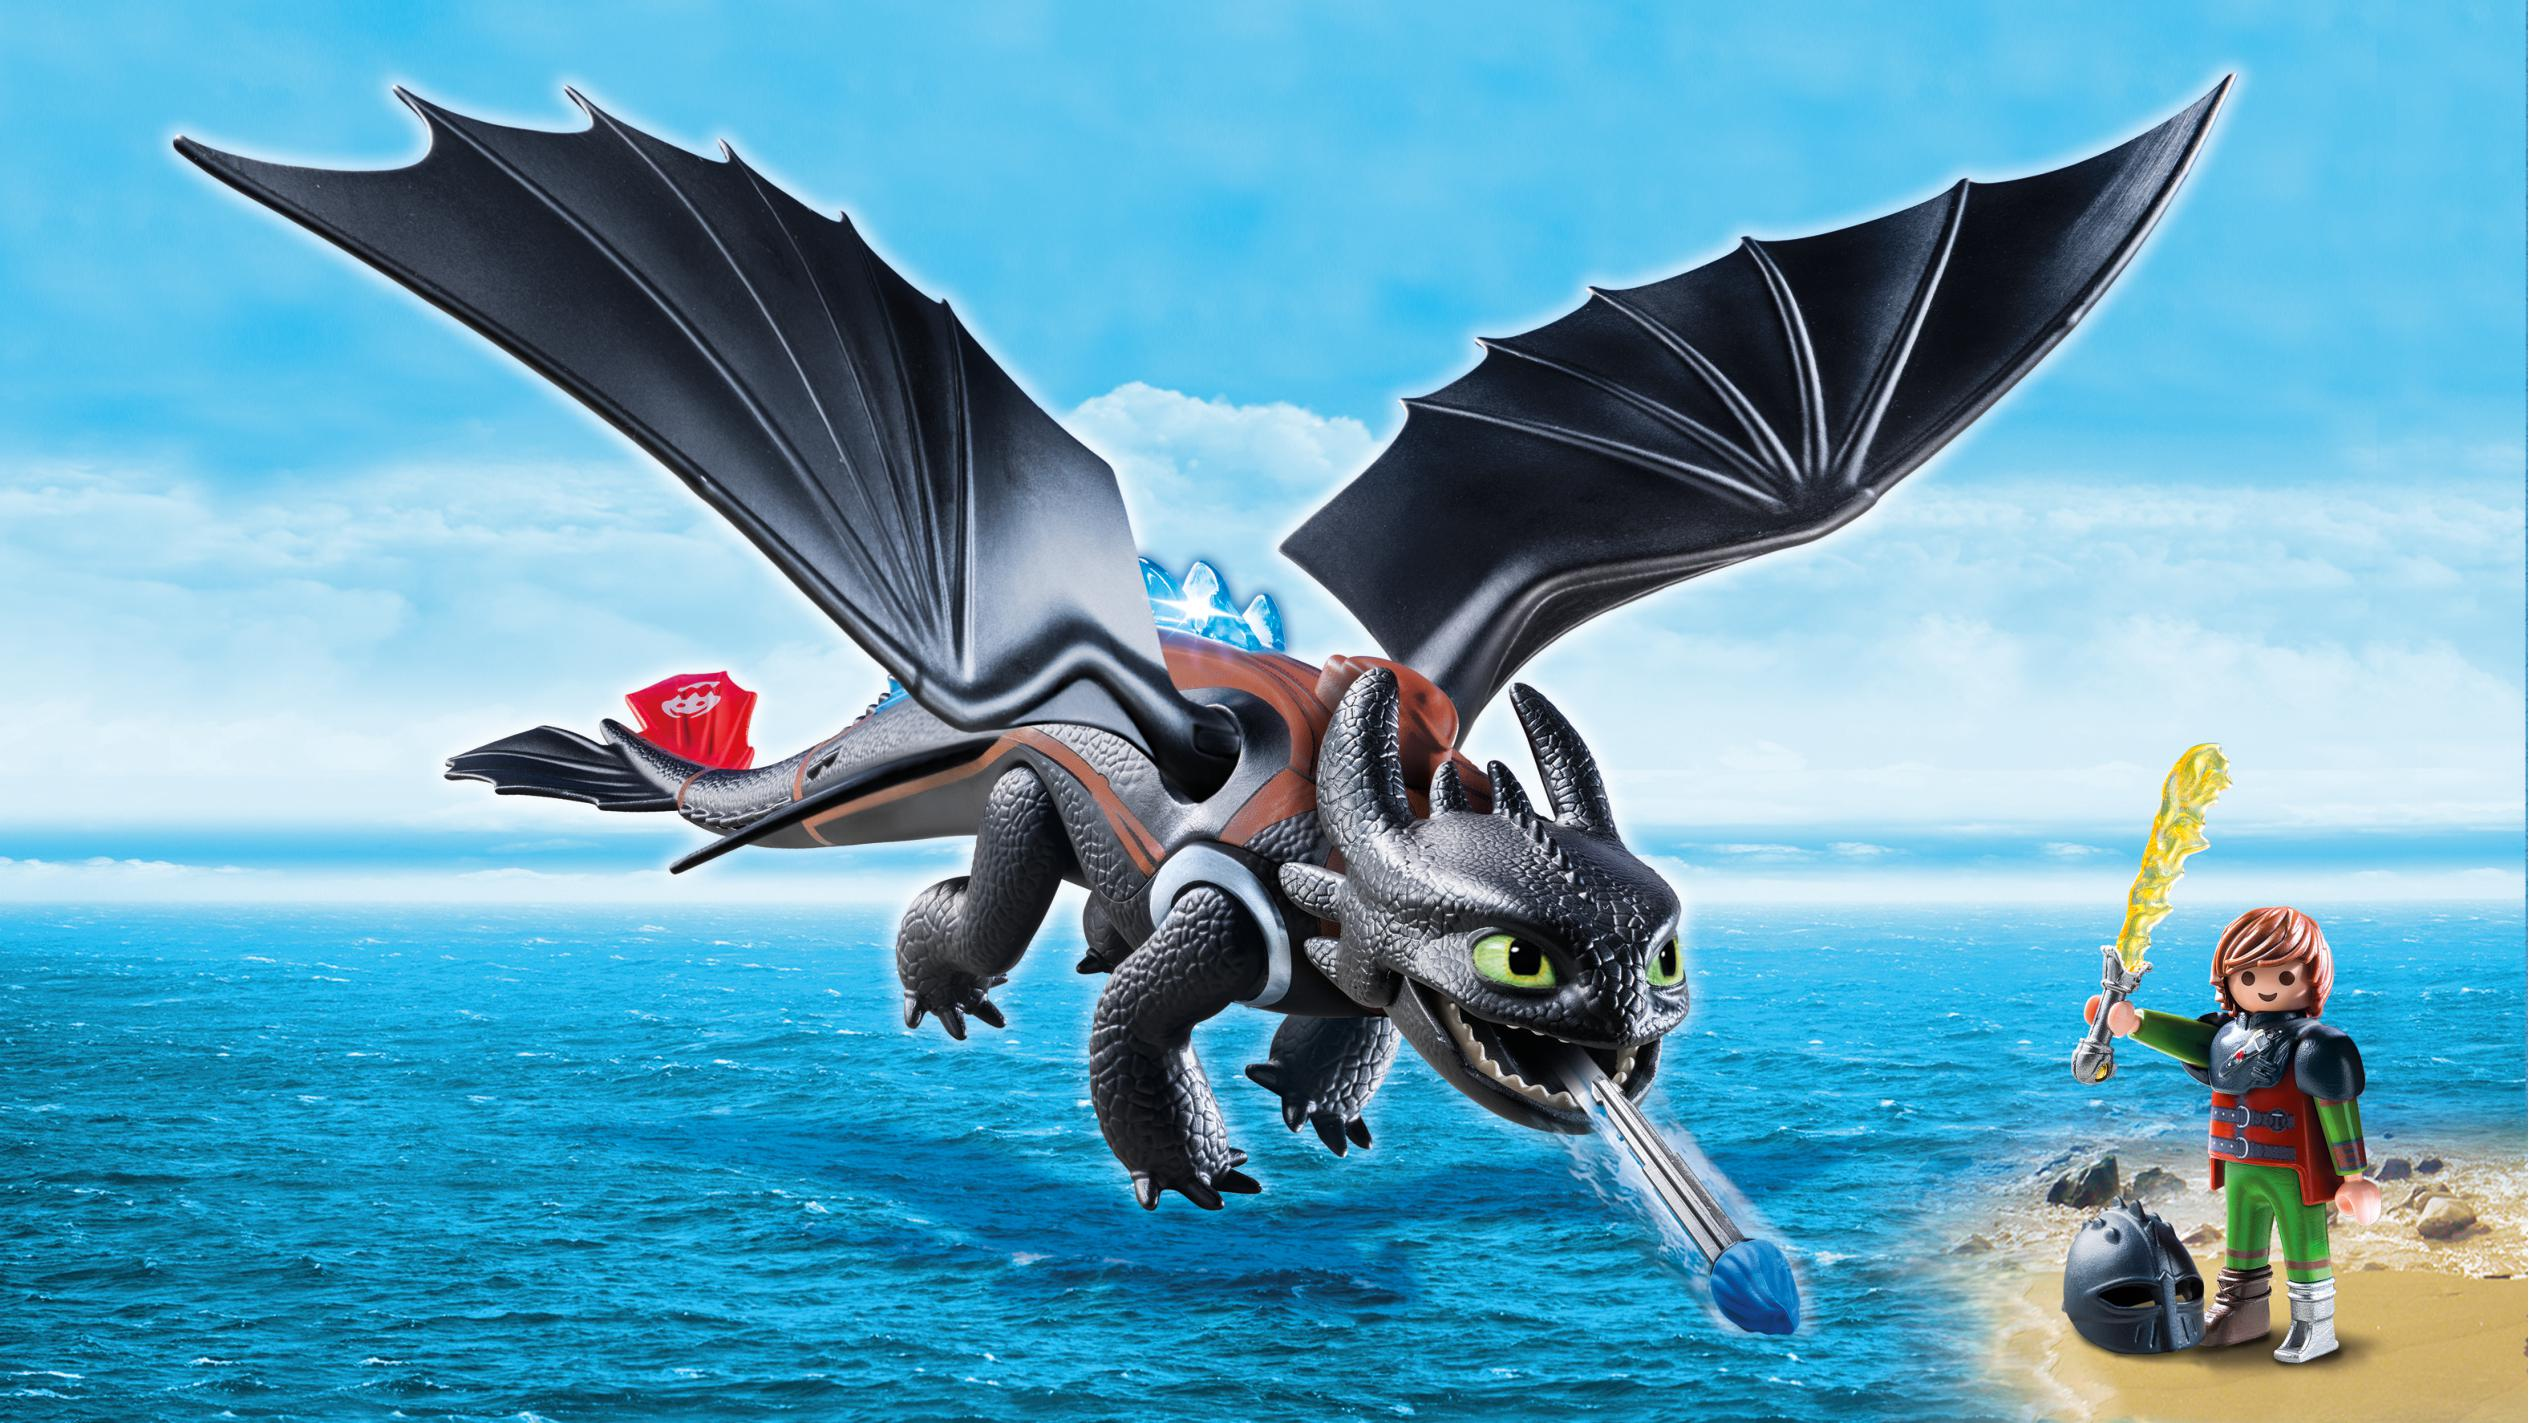 Gioca a Dragons con Playmobil